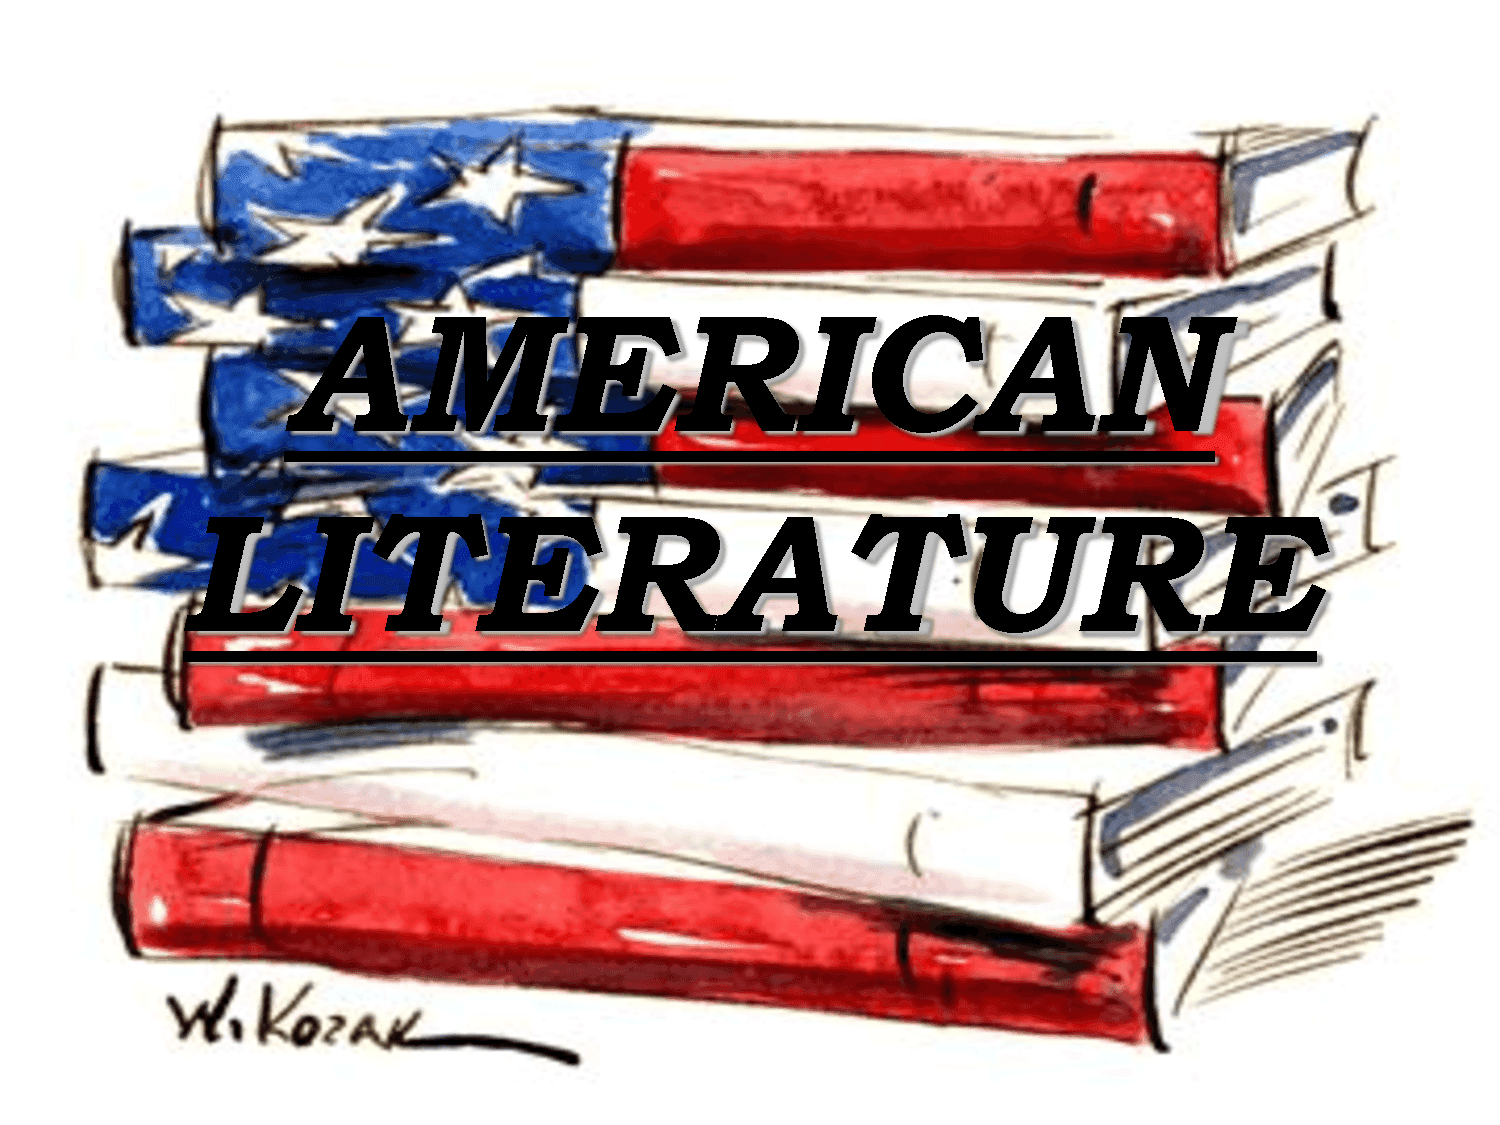 A drawing of books with American flag